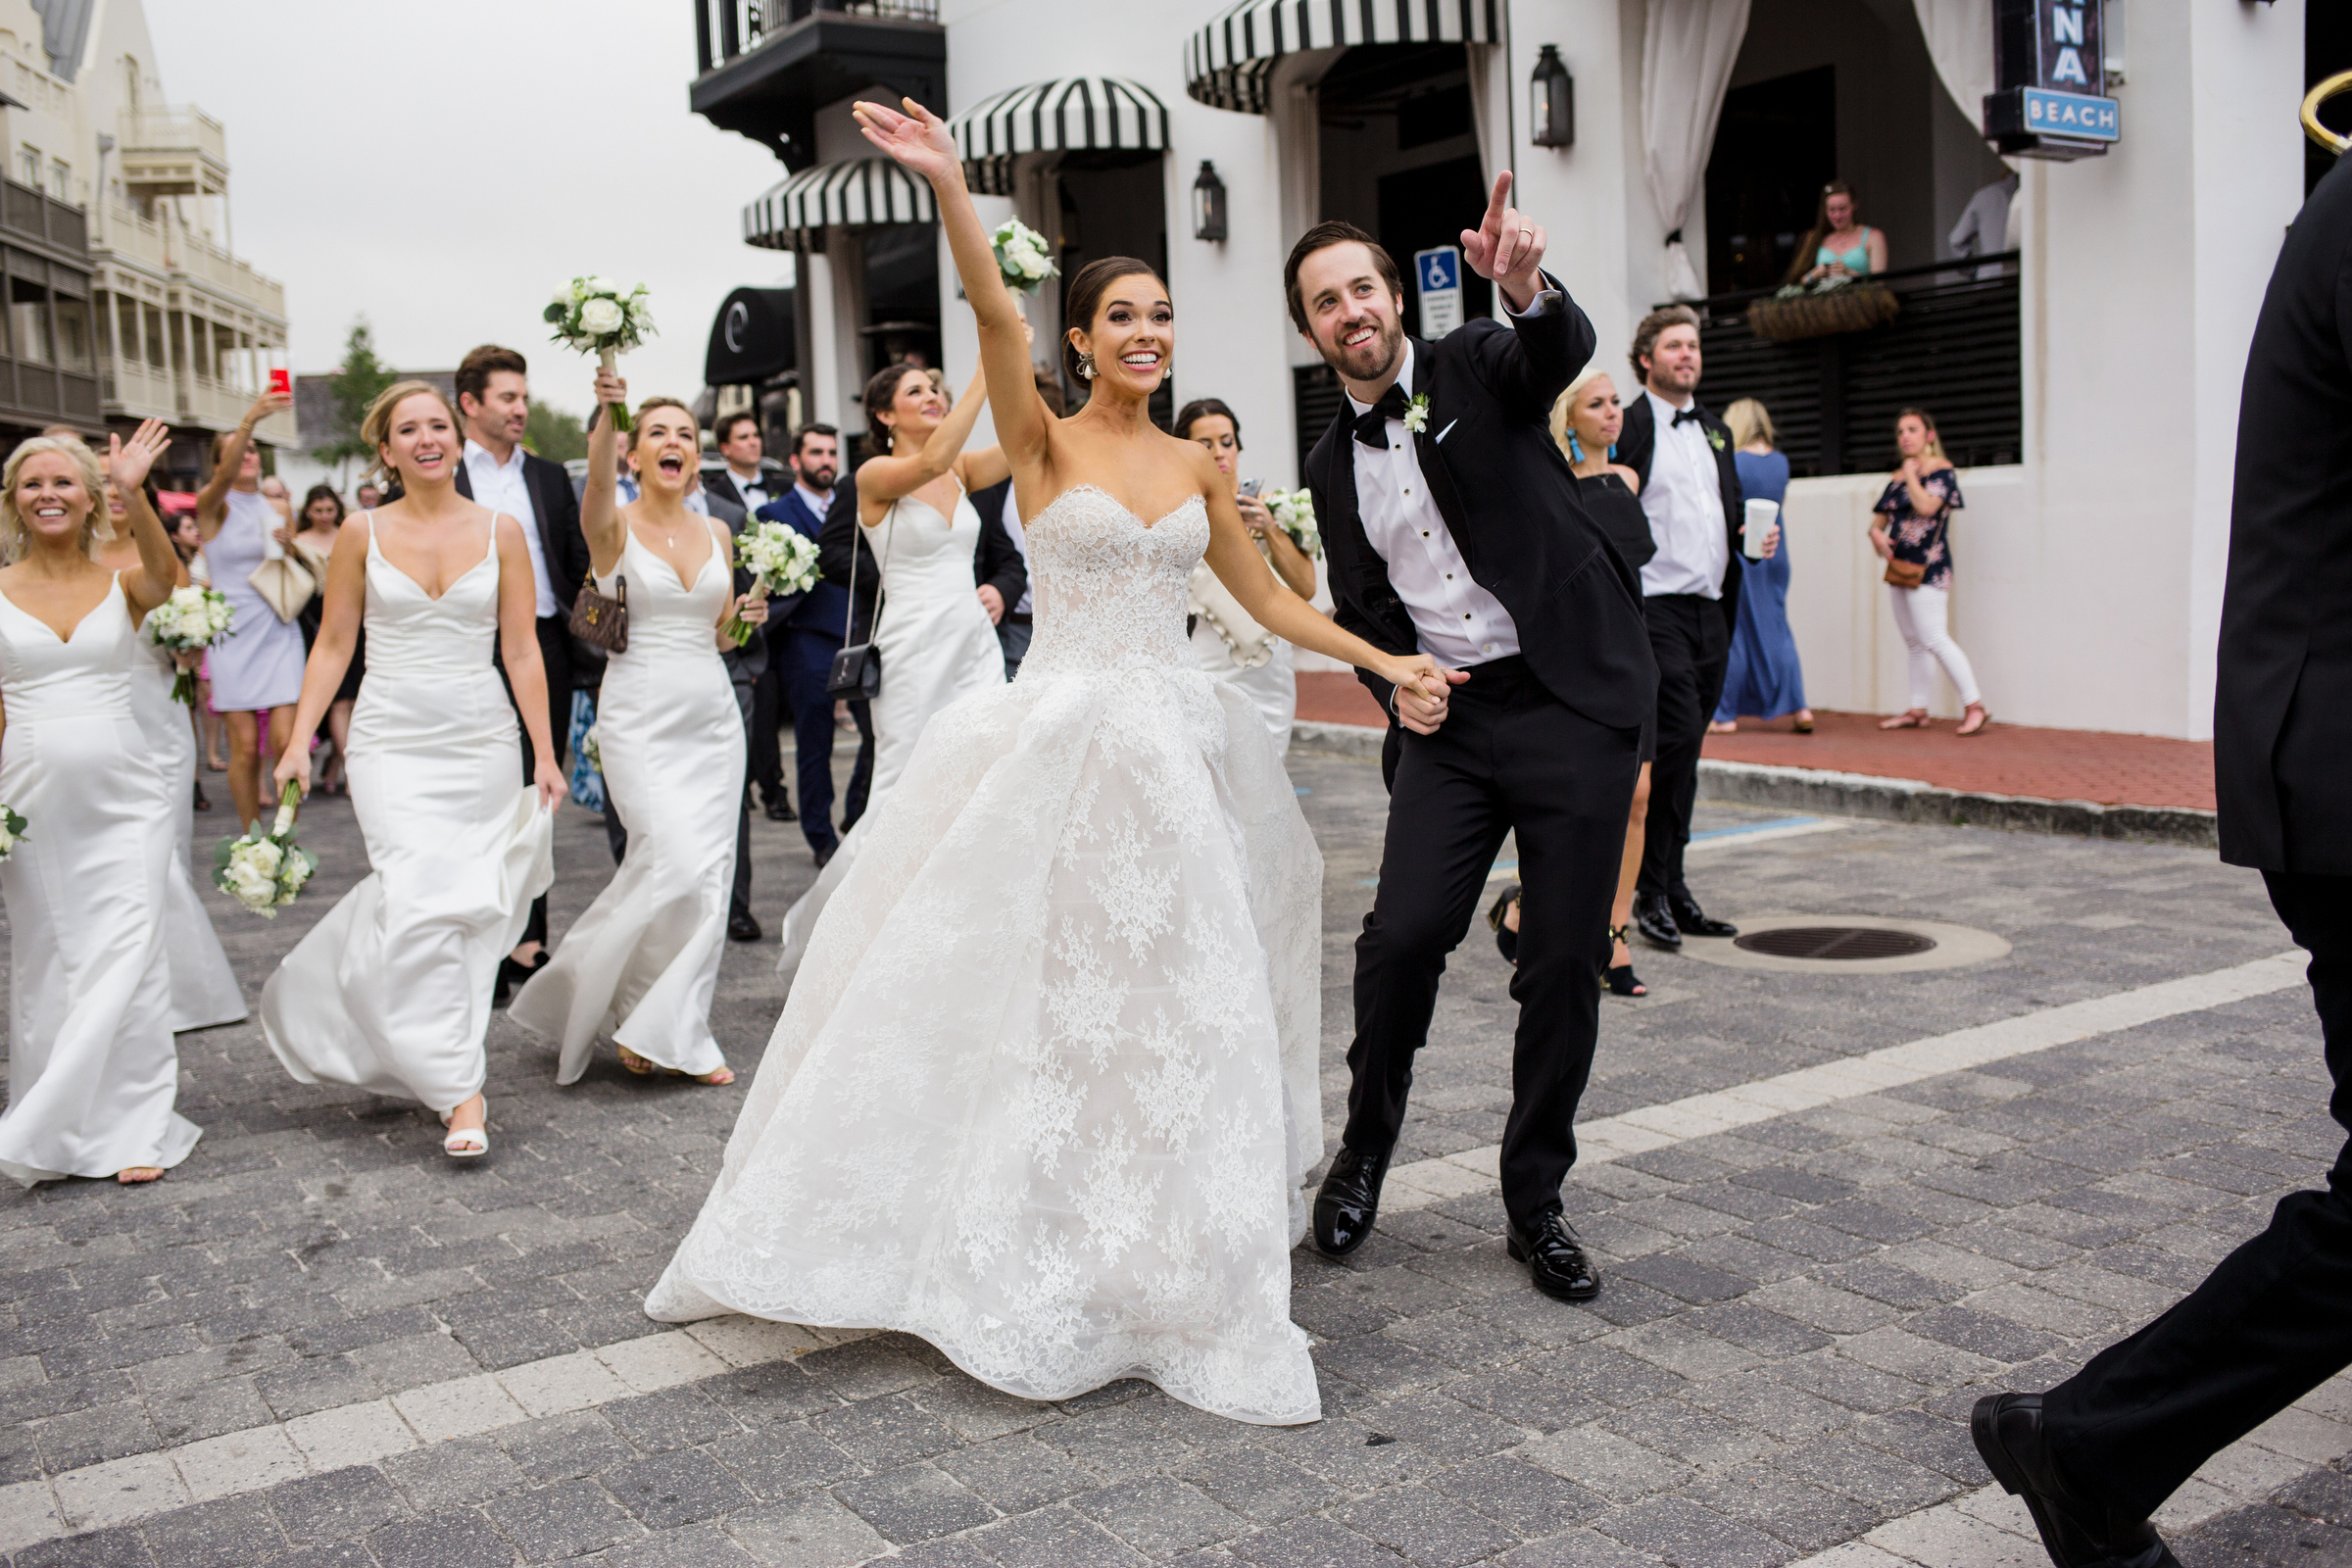 bride-groom-and-bridal-party-waving-to-guests-modernmade-weddings